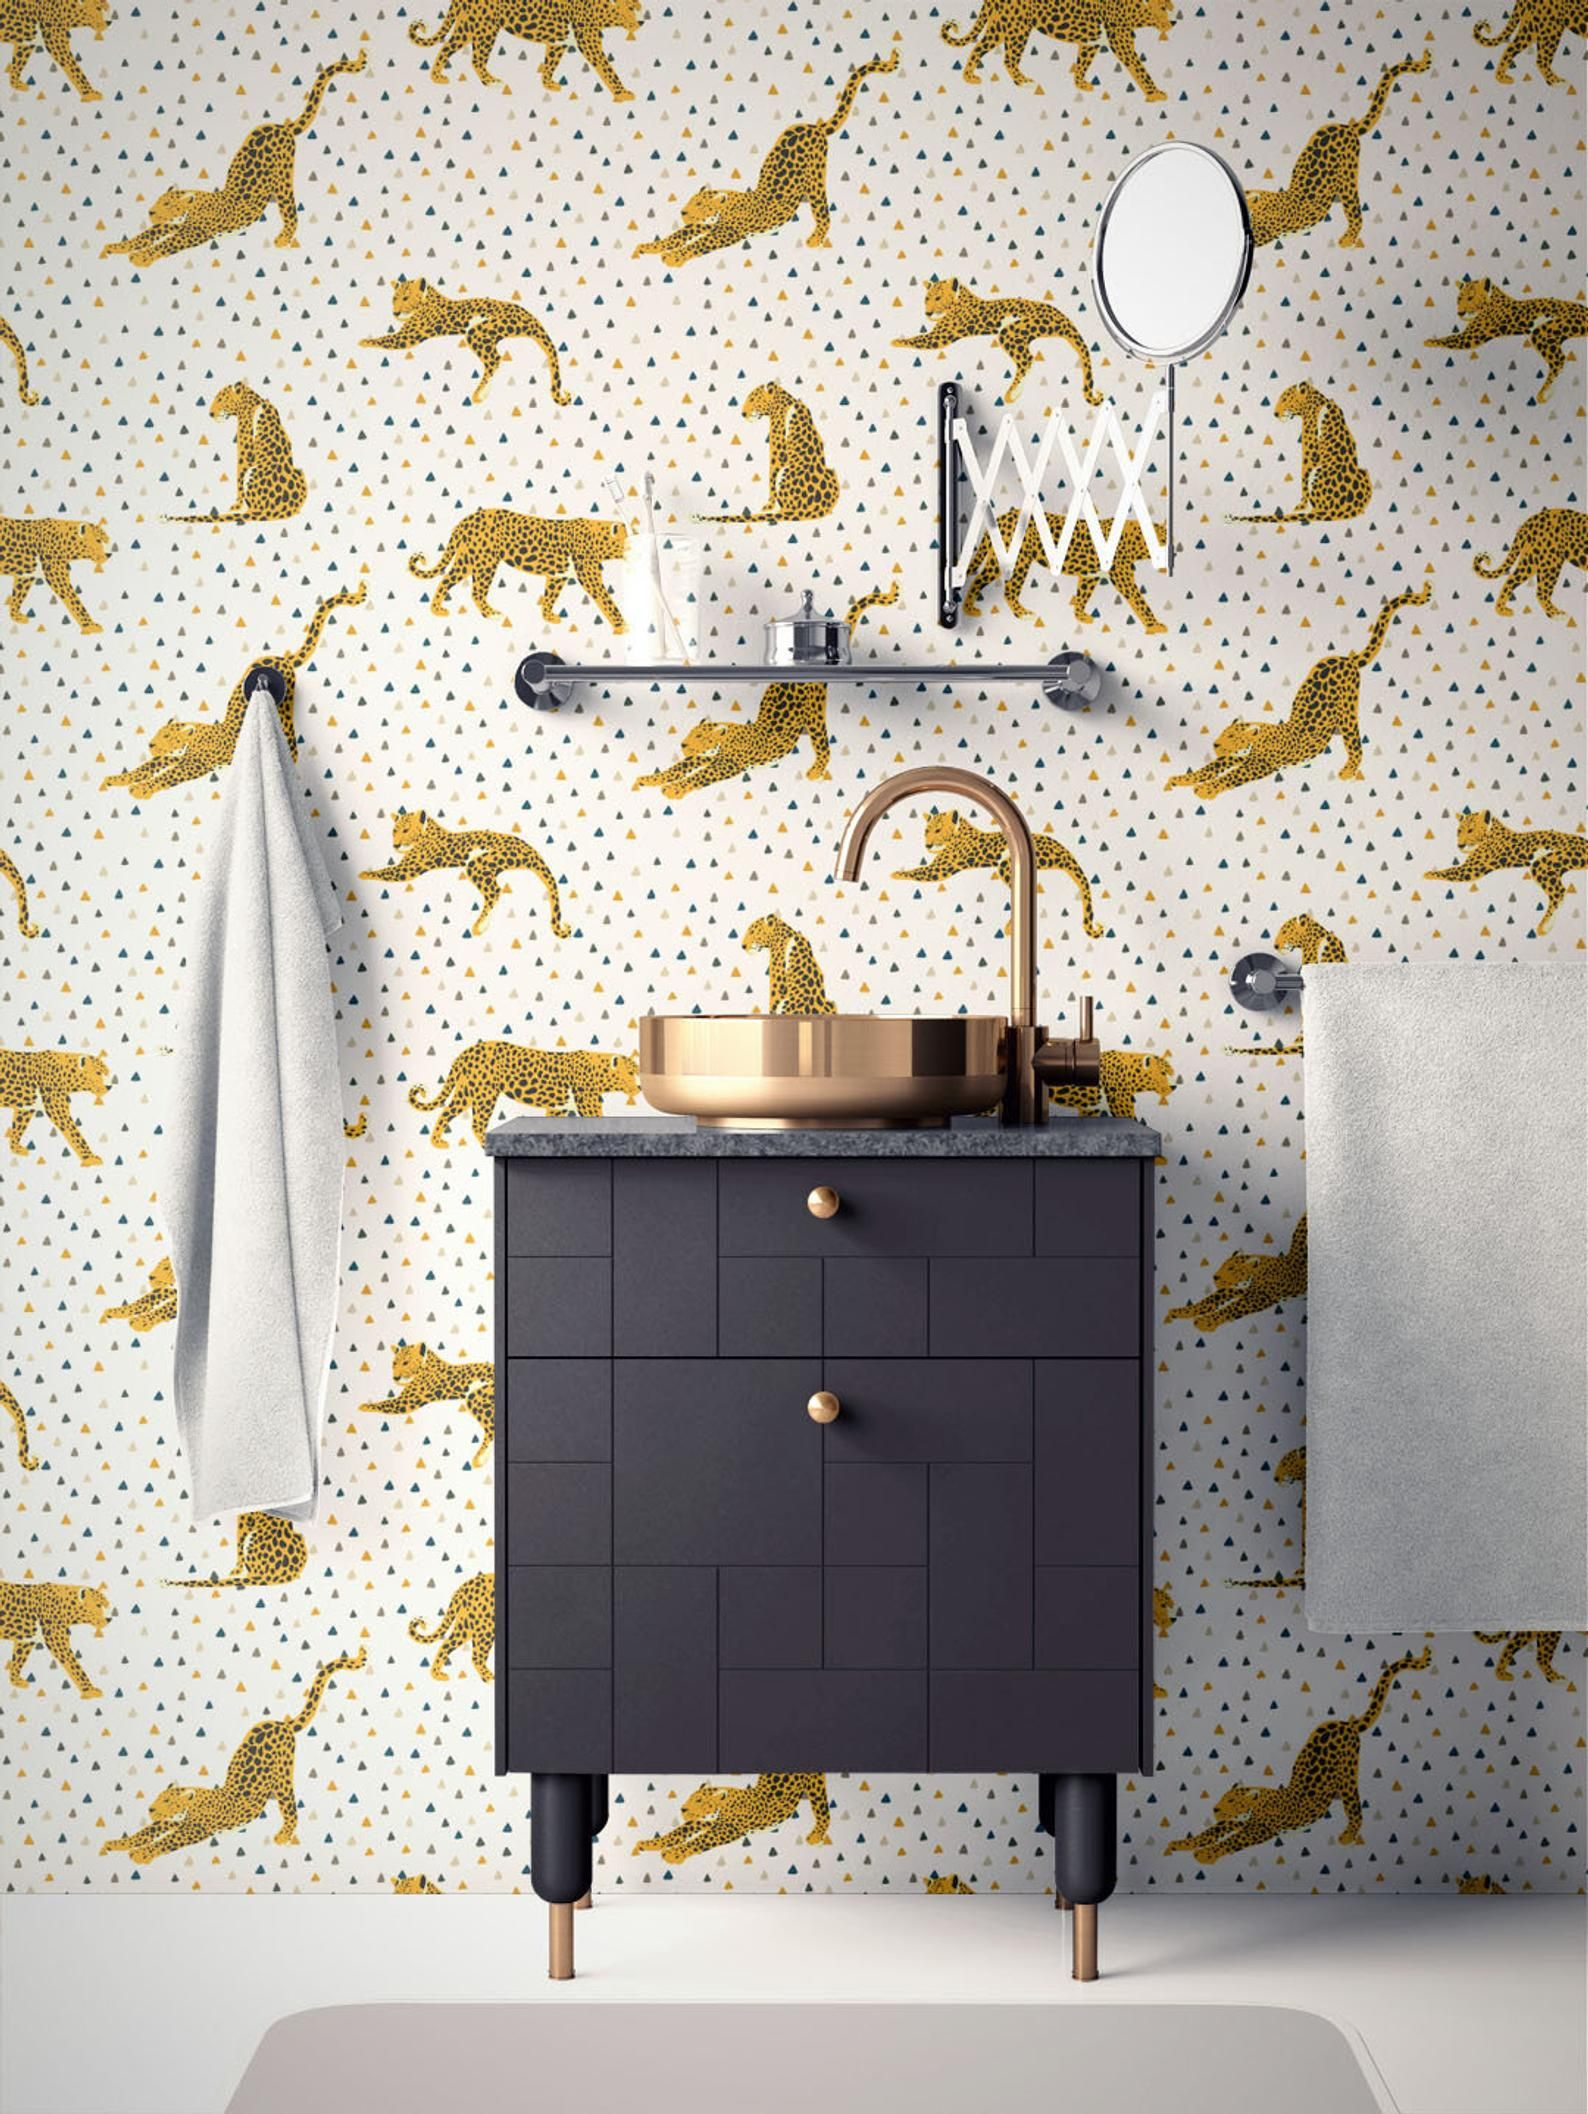 Tropical Removable Wallpaper Leopard Wallpaper Modern Etsy Peel And Stick Wallpaper Removable Wallpaper Self Adhesive Wallpaper